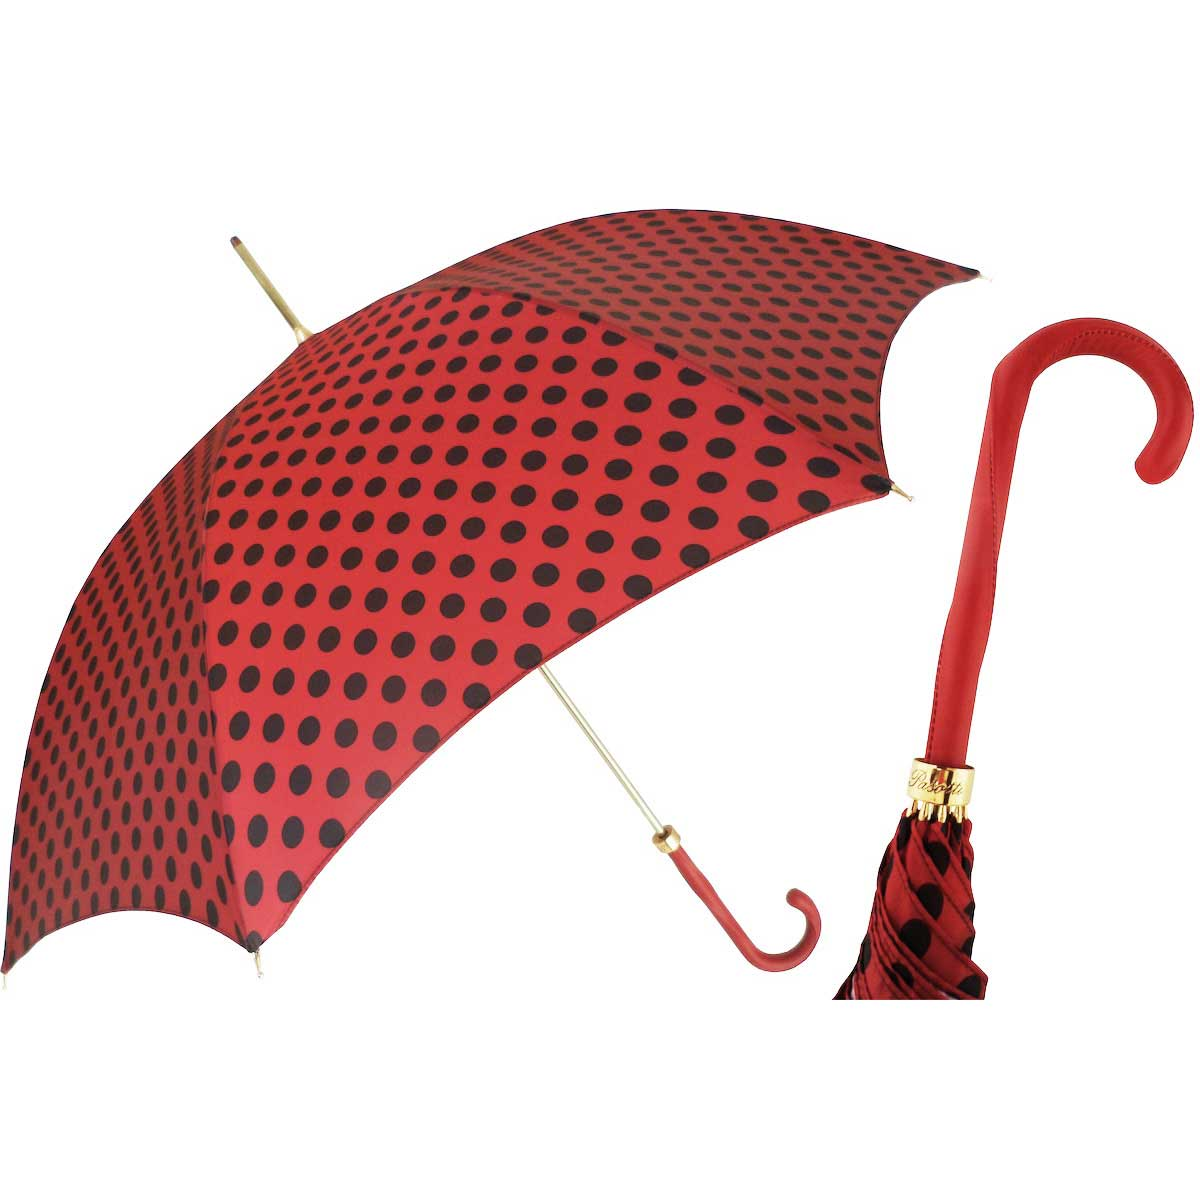 Pasotti Nice Red with Black Polka Dots Women's Umbrella